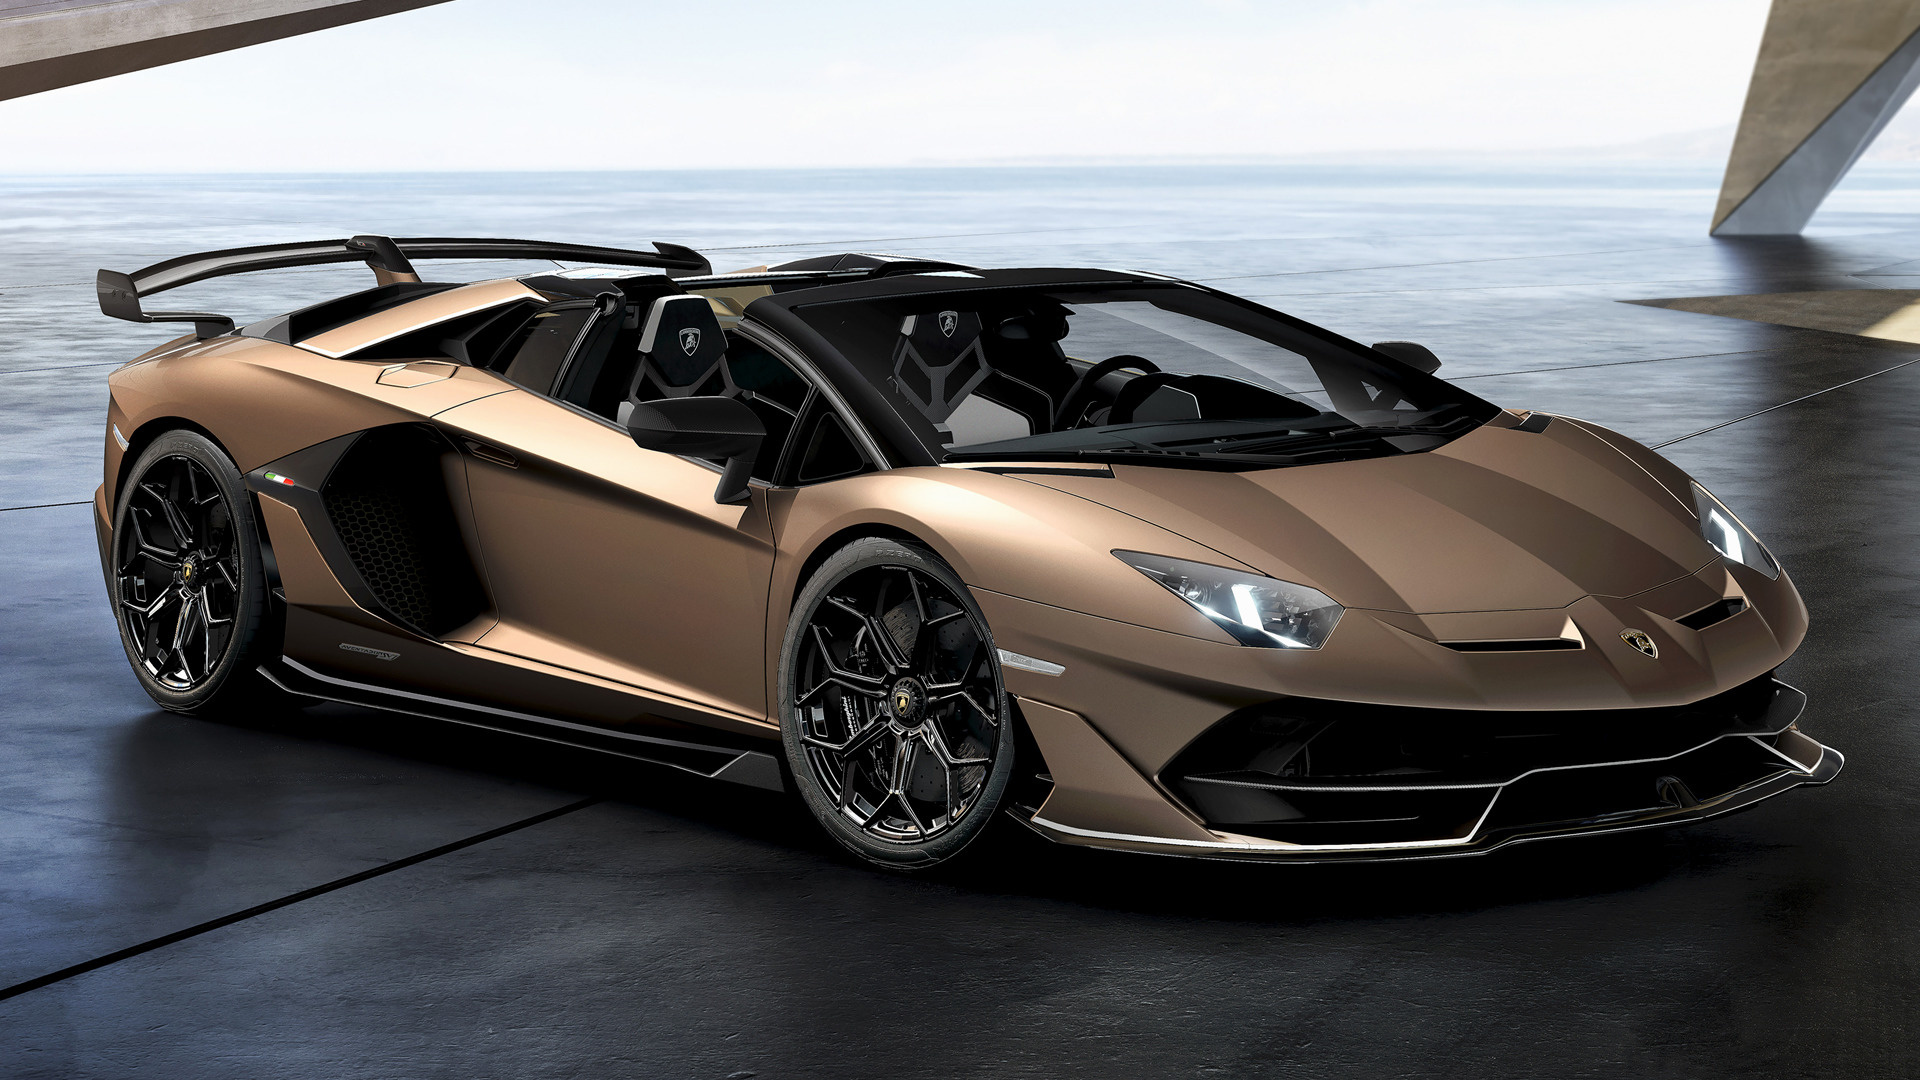 2019 Lamborghini Aventador Svj Roadster Wallpapers And Hd Images